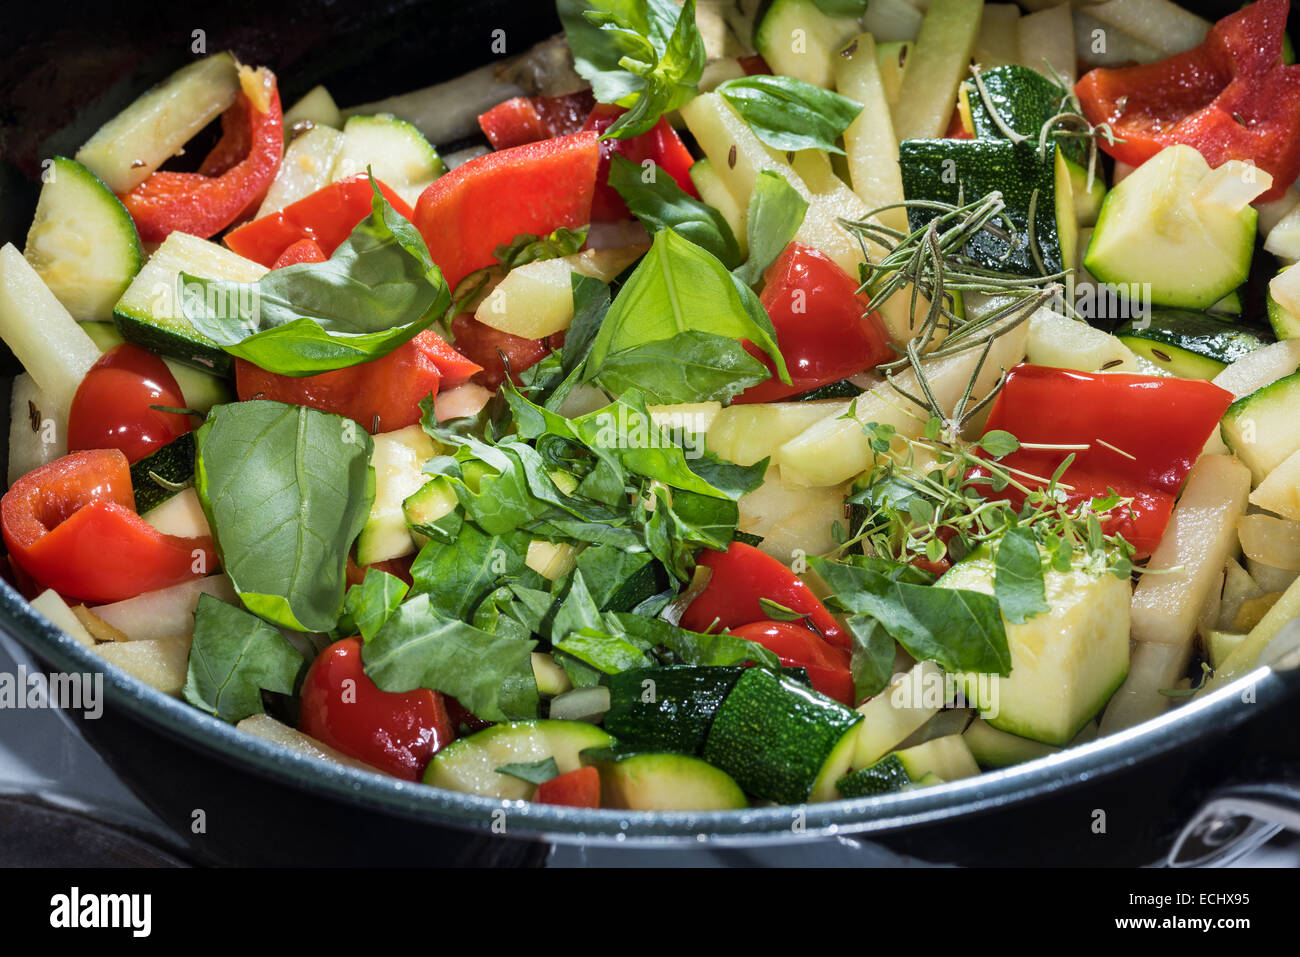 mixed vegetables prepared for frying in a pan. health healthy food herbal spices Zucchine peppers celery basil rosemary - Stock Image